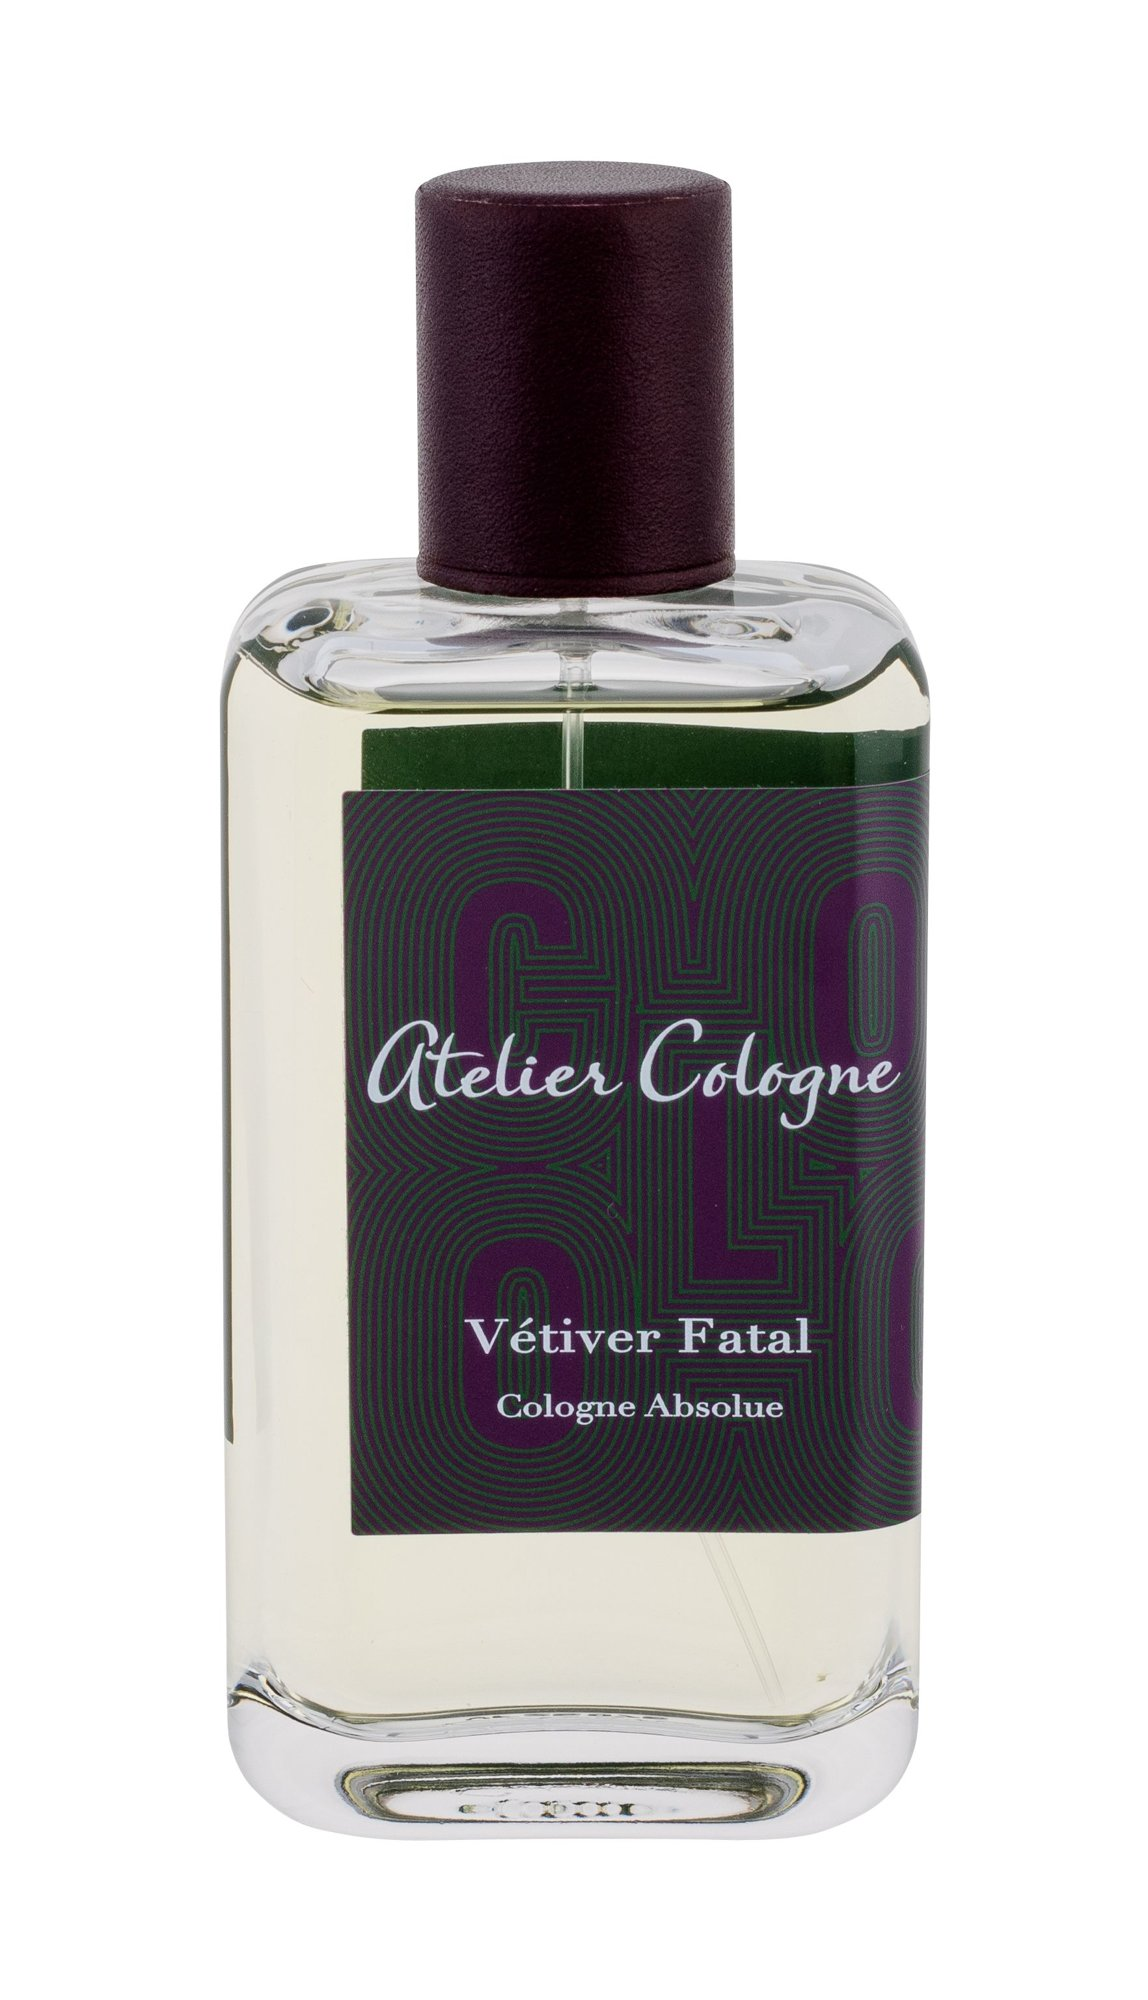 Atelier Cologne Vetiver Fatal Cologne 100ml